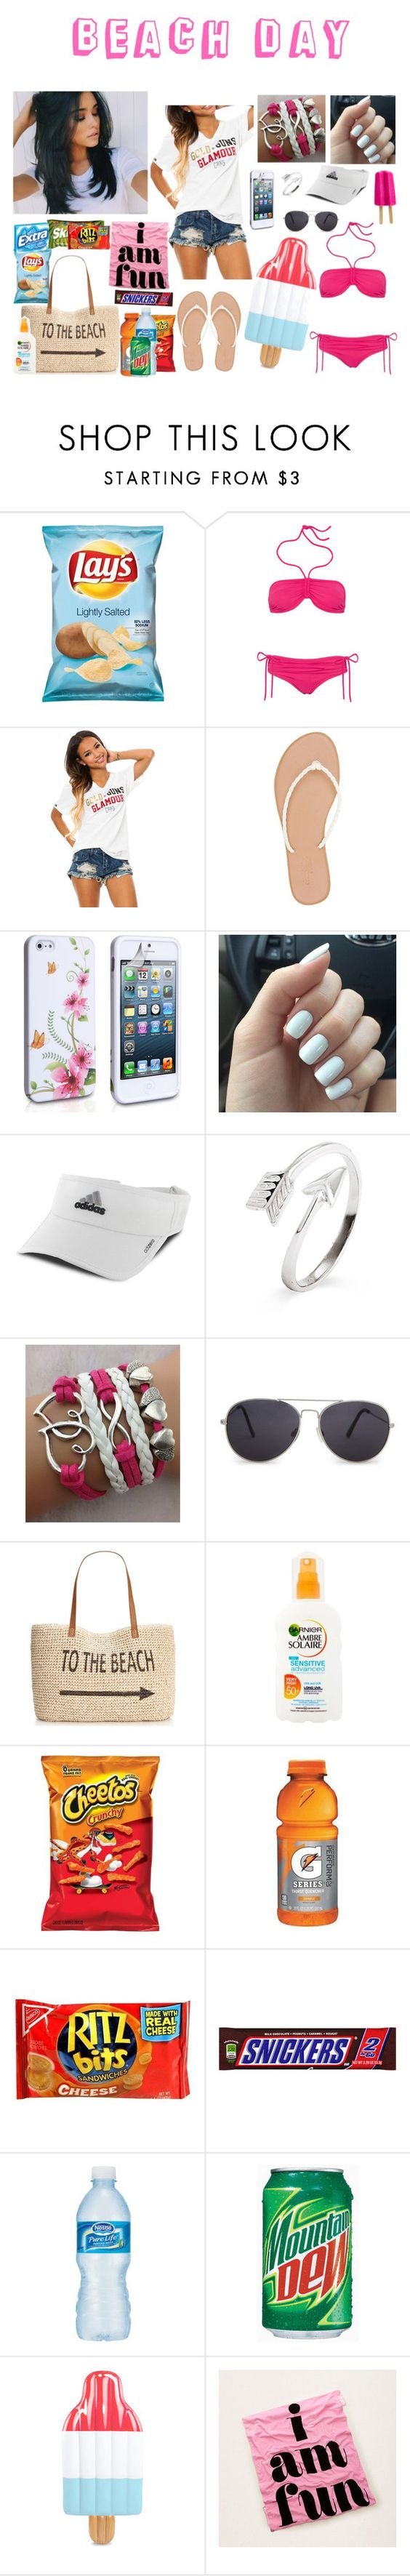 """""""Beach Day ☀😃"""" by superkaci-gordon ❤ liked on Polyvore featuring Lanvin, Crooks & Castles, Charlotte Russe, adidas, MANGO, Style & Co. and Aerie"""